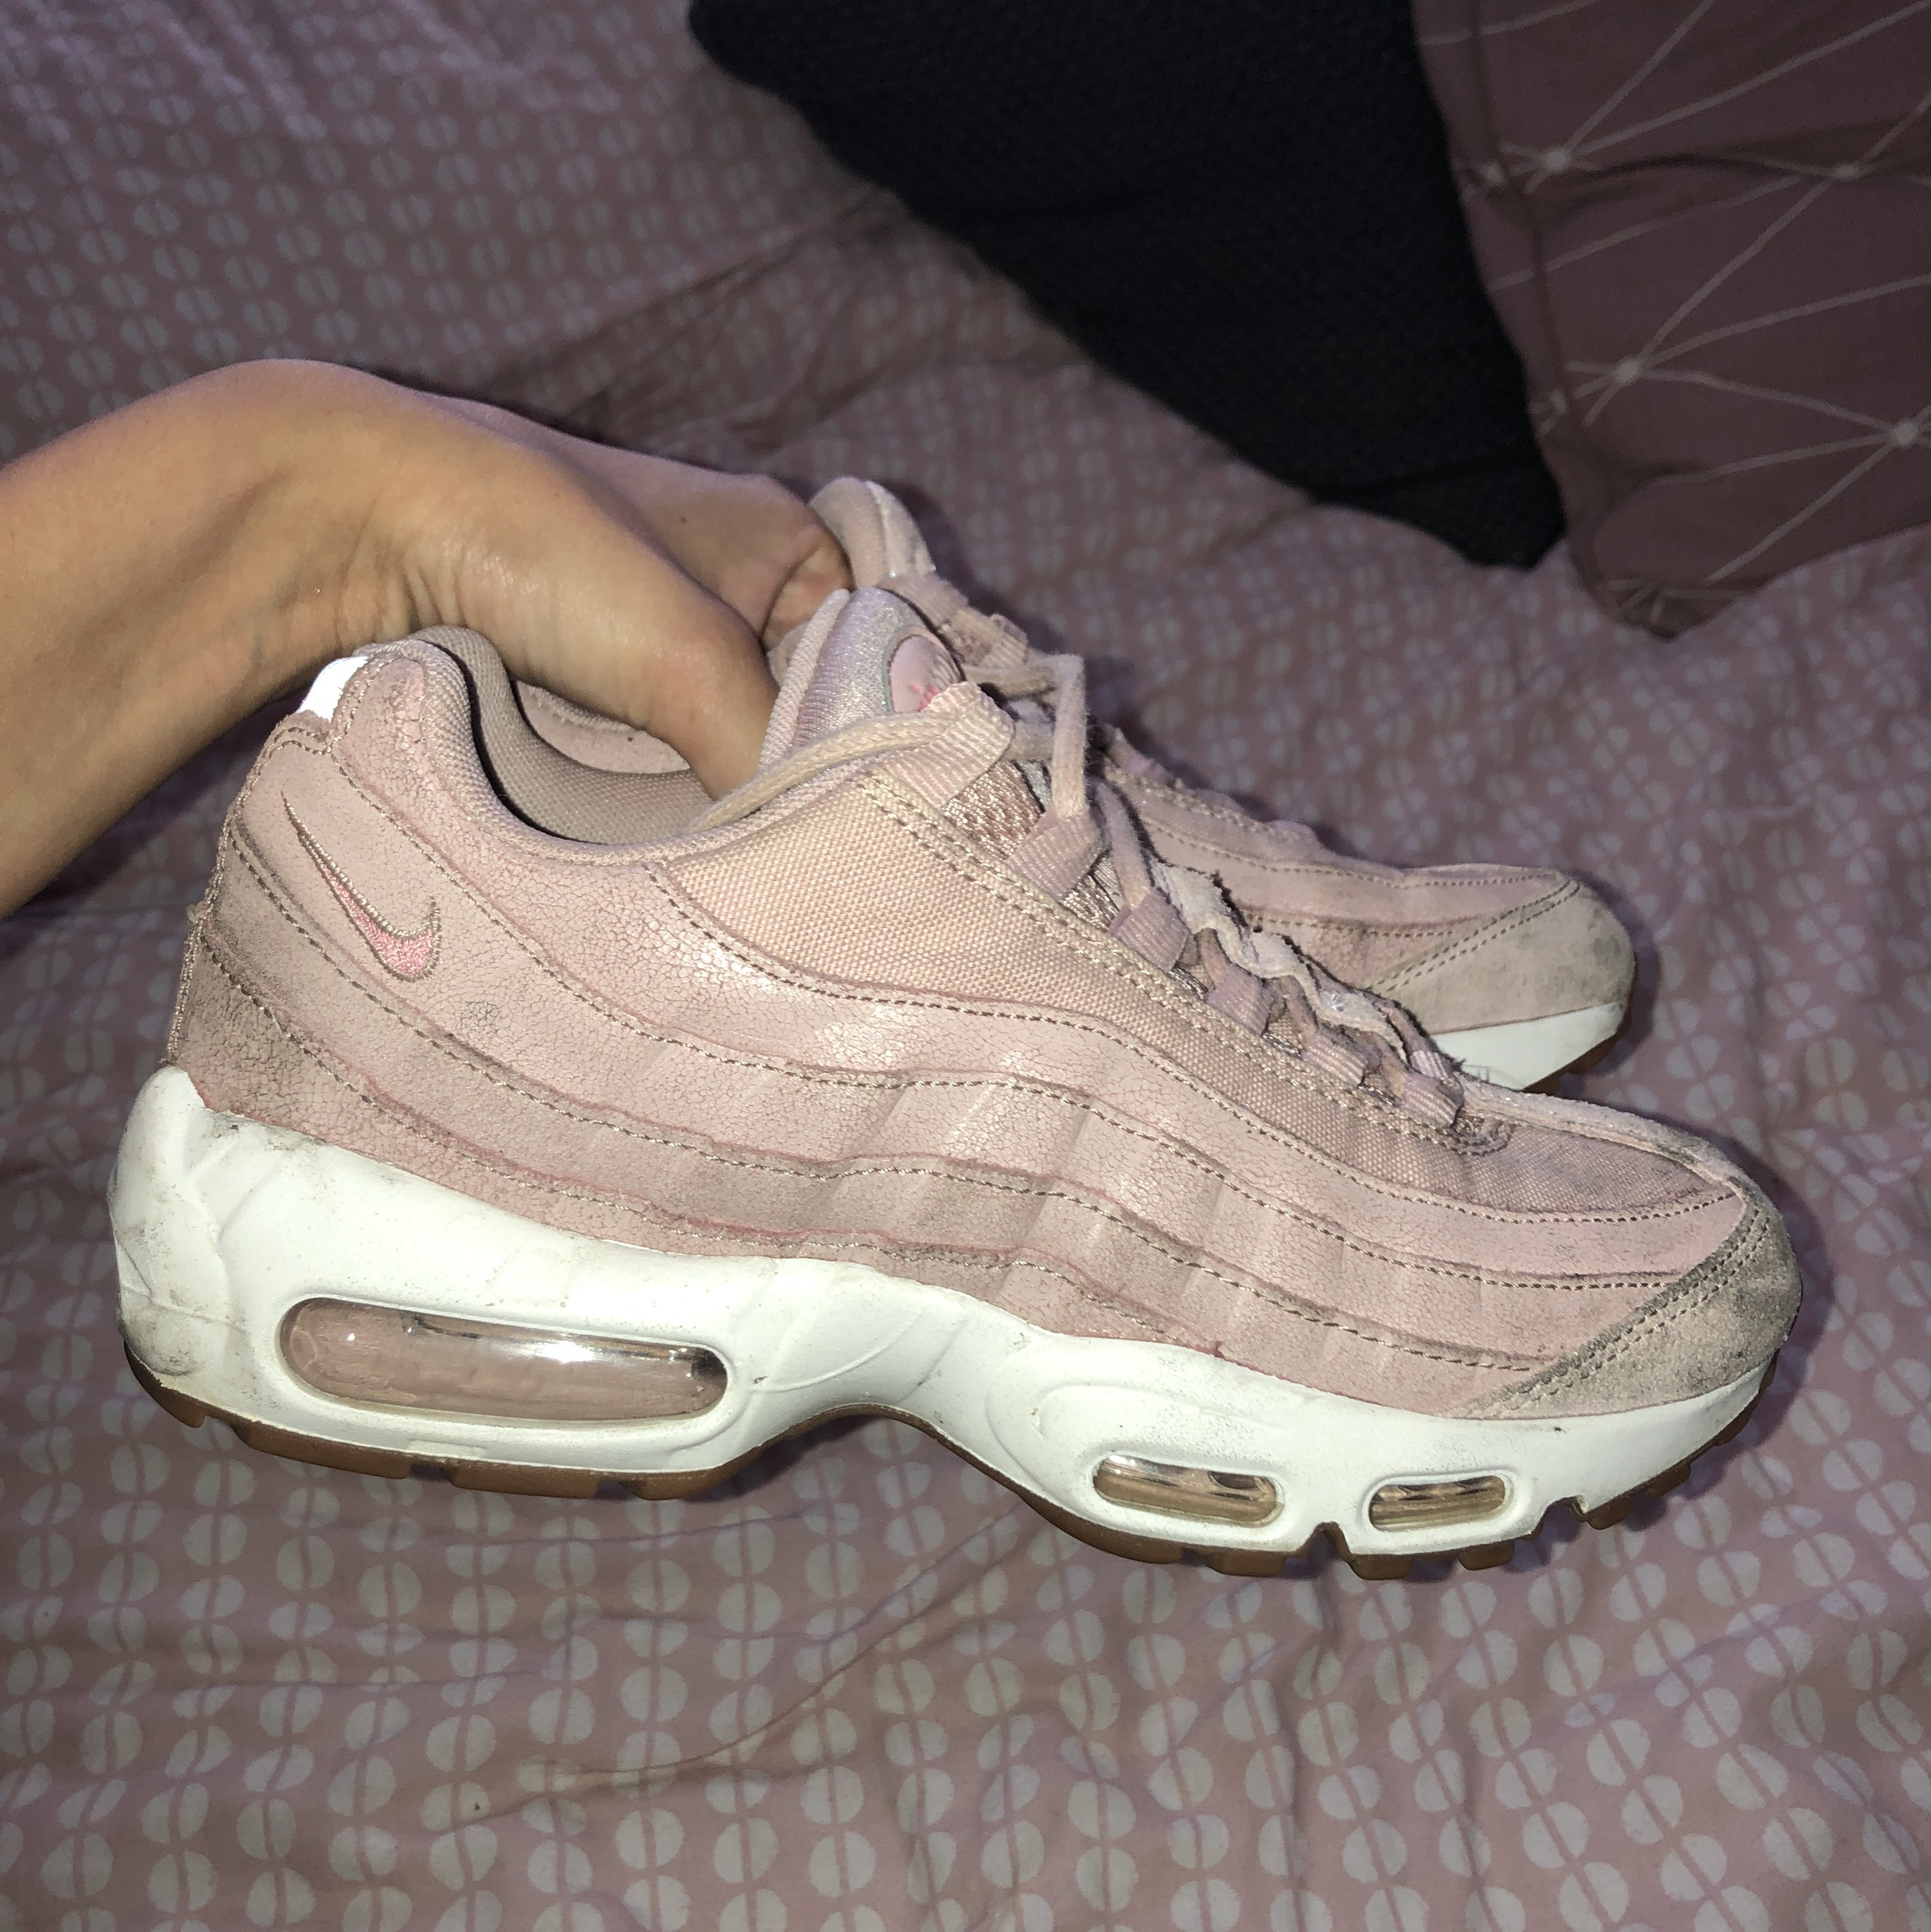 Women's Nike Air Max 95 in Pink. Size 6